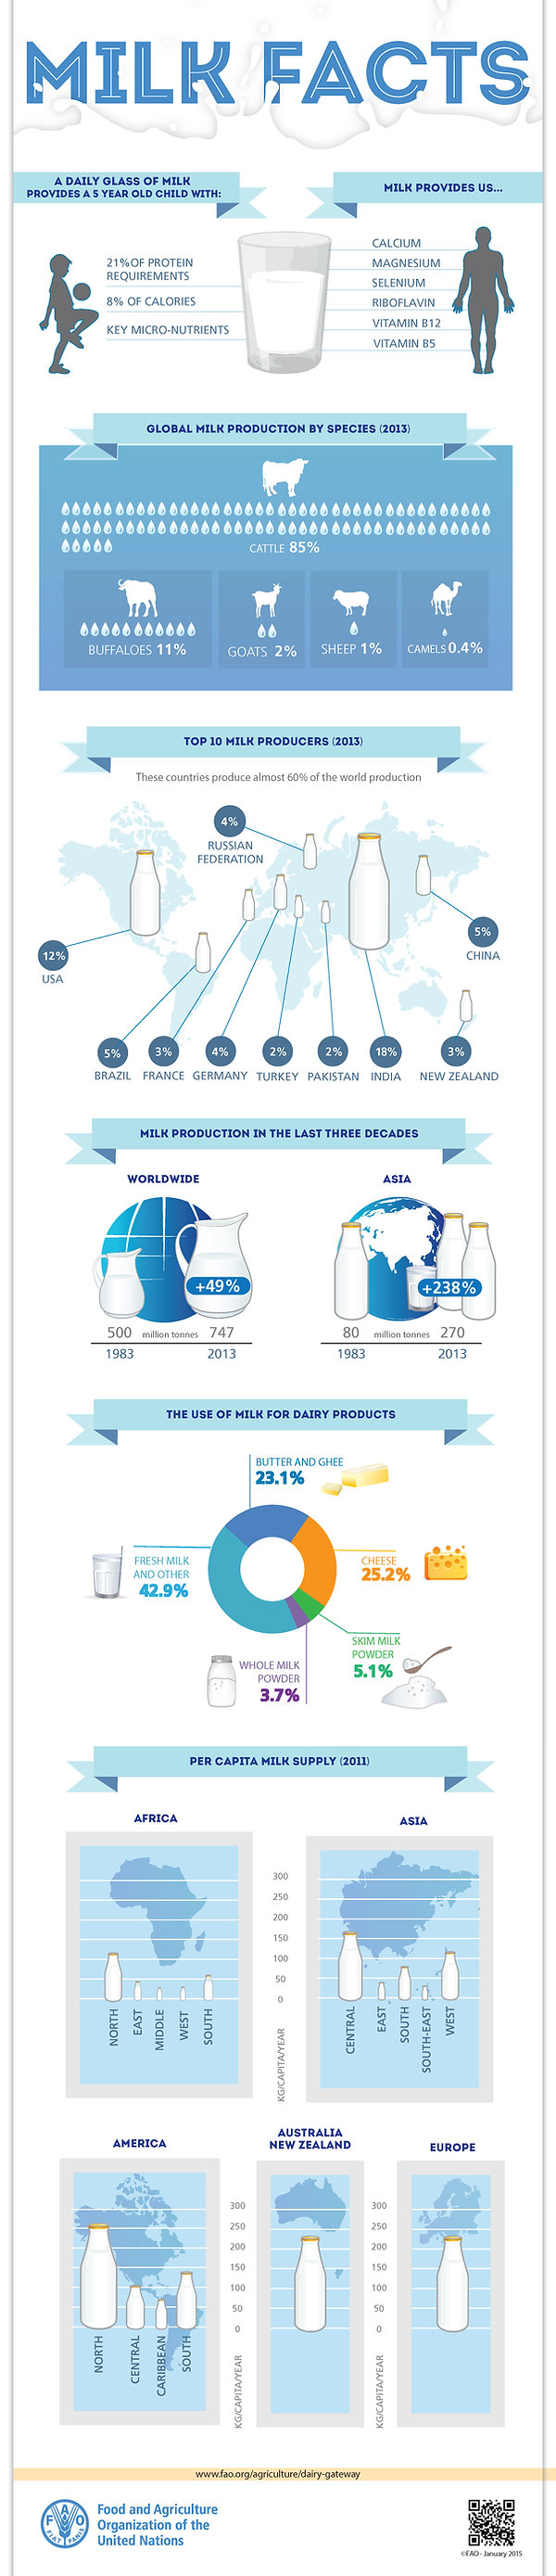 FAO-Infographic-milk-facts-en.jpg